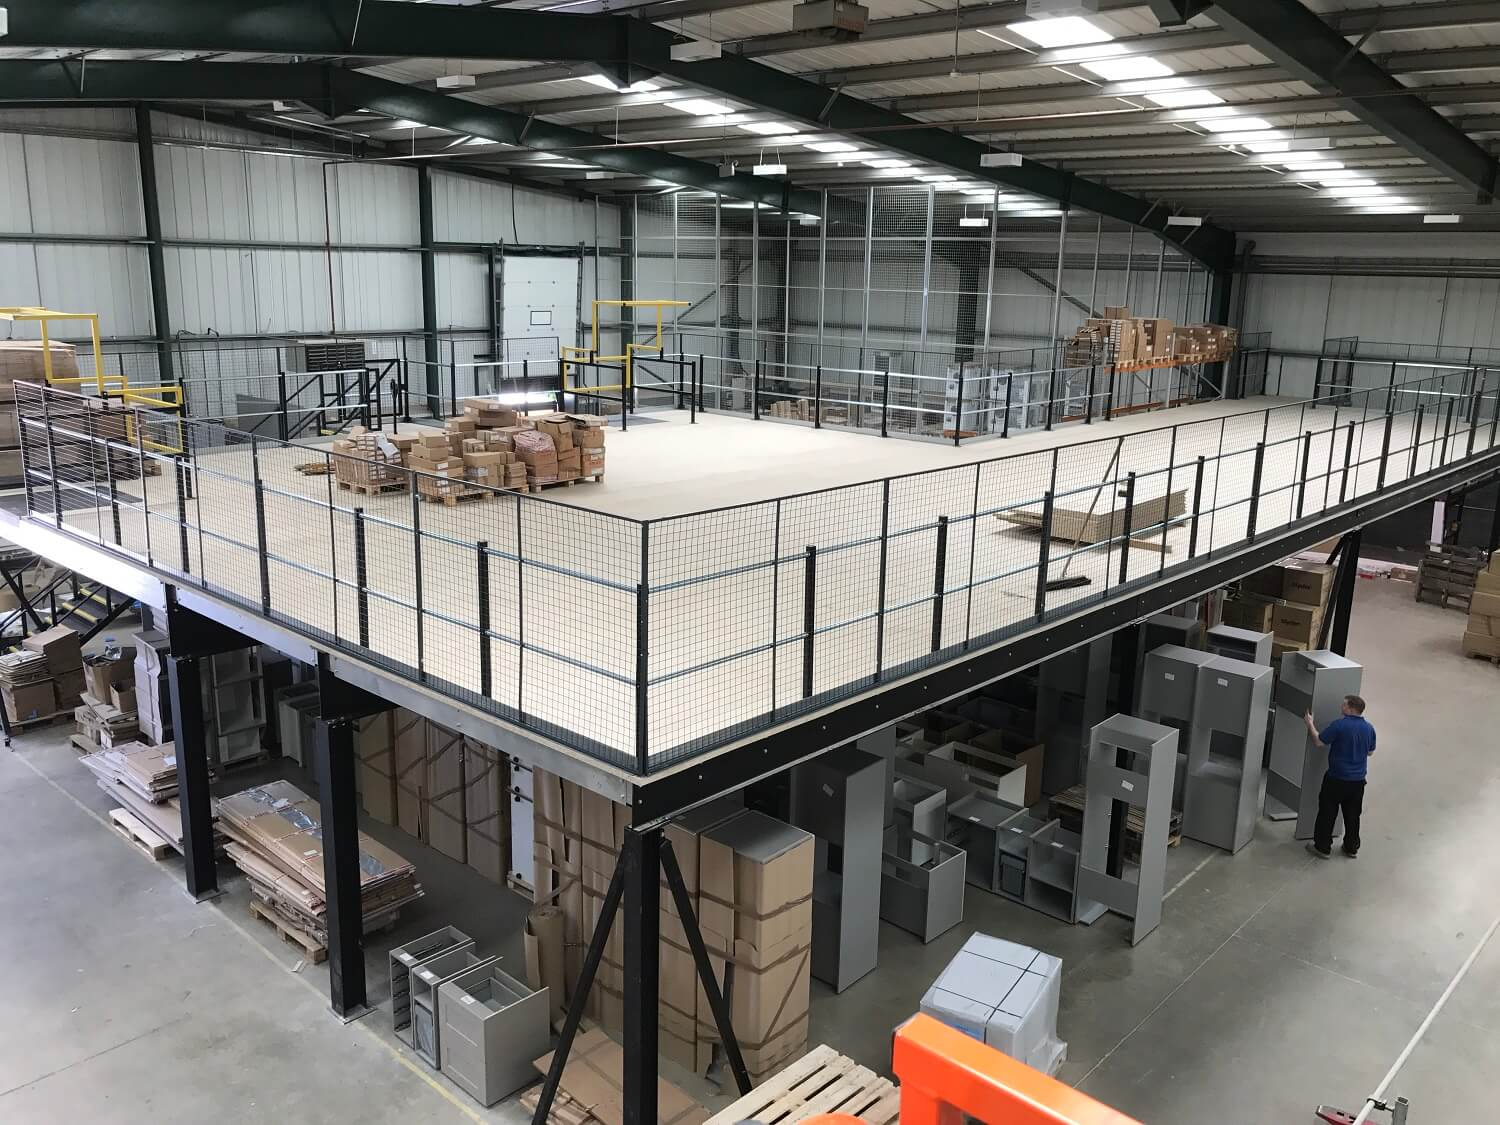 Mezzanine Floors – Your Questions Answered in this Complete Guide